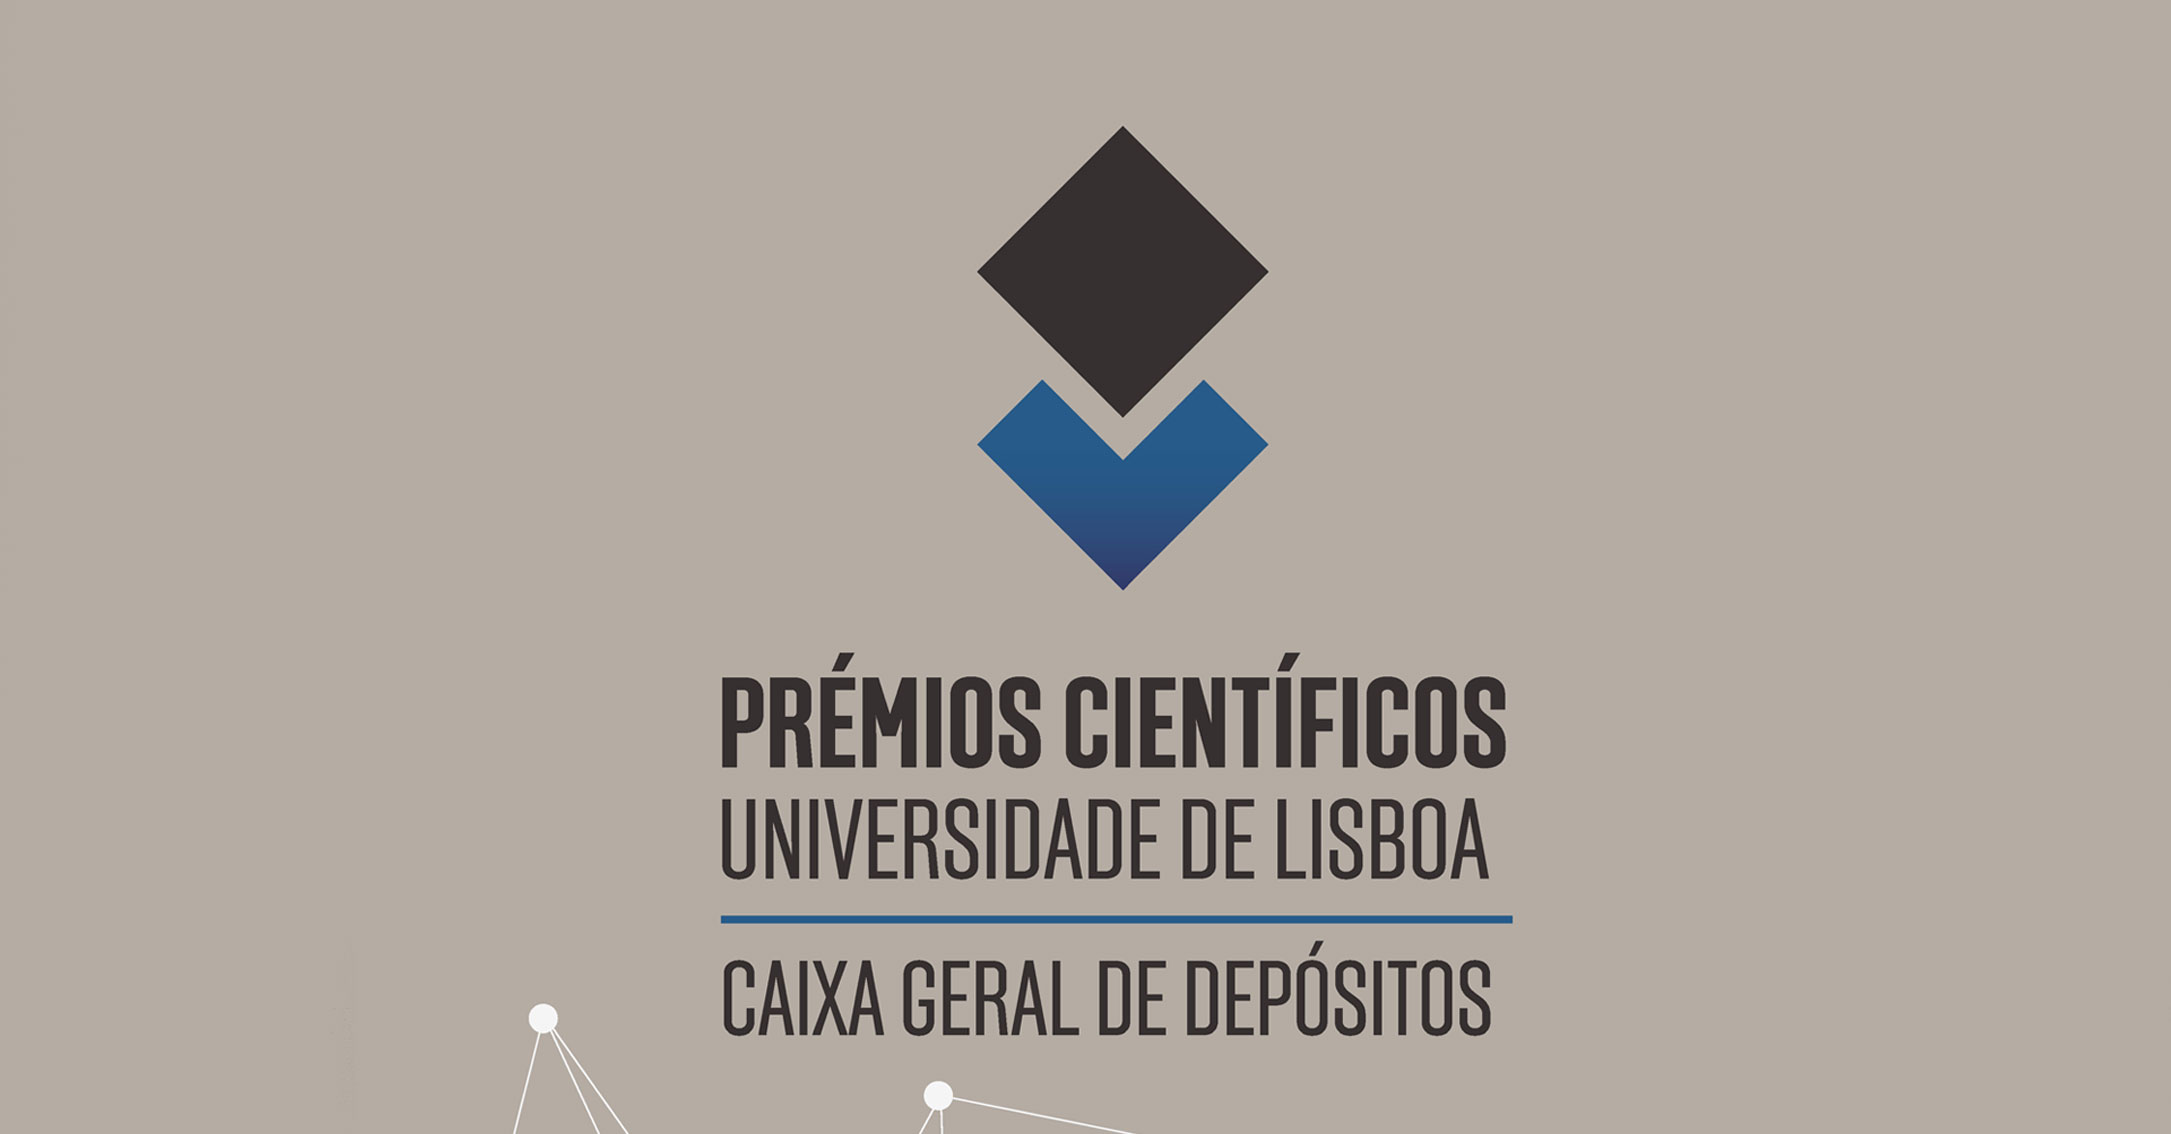 University of Lisbon – Caixa Geral de Depósitos scientific prize awarded to Prof. José Luís Zêzere